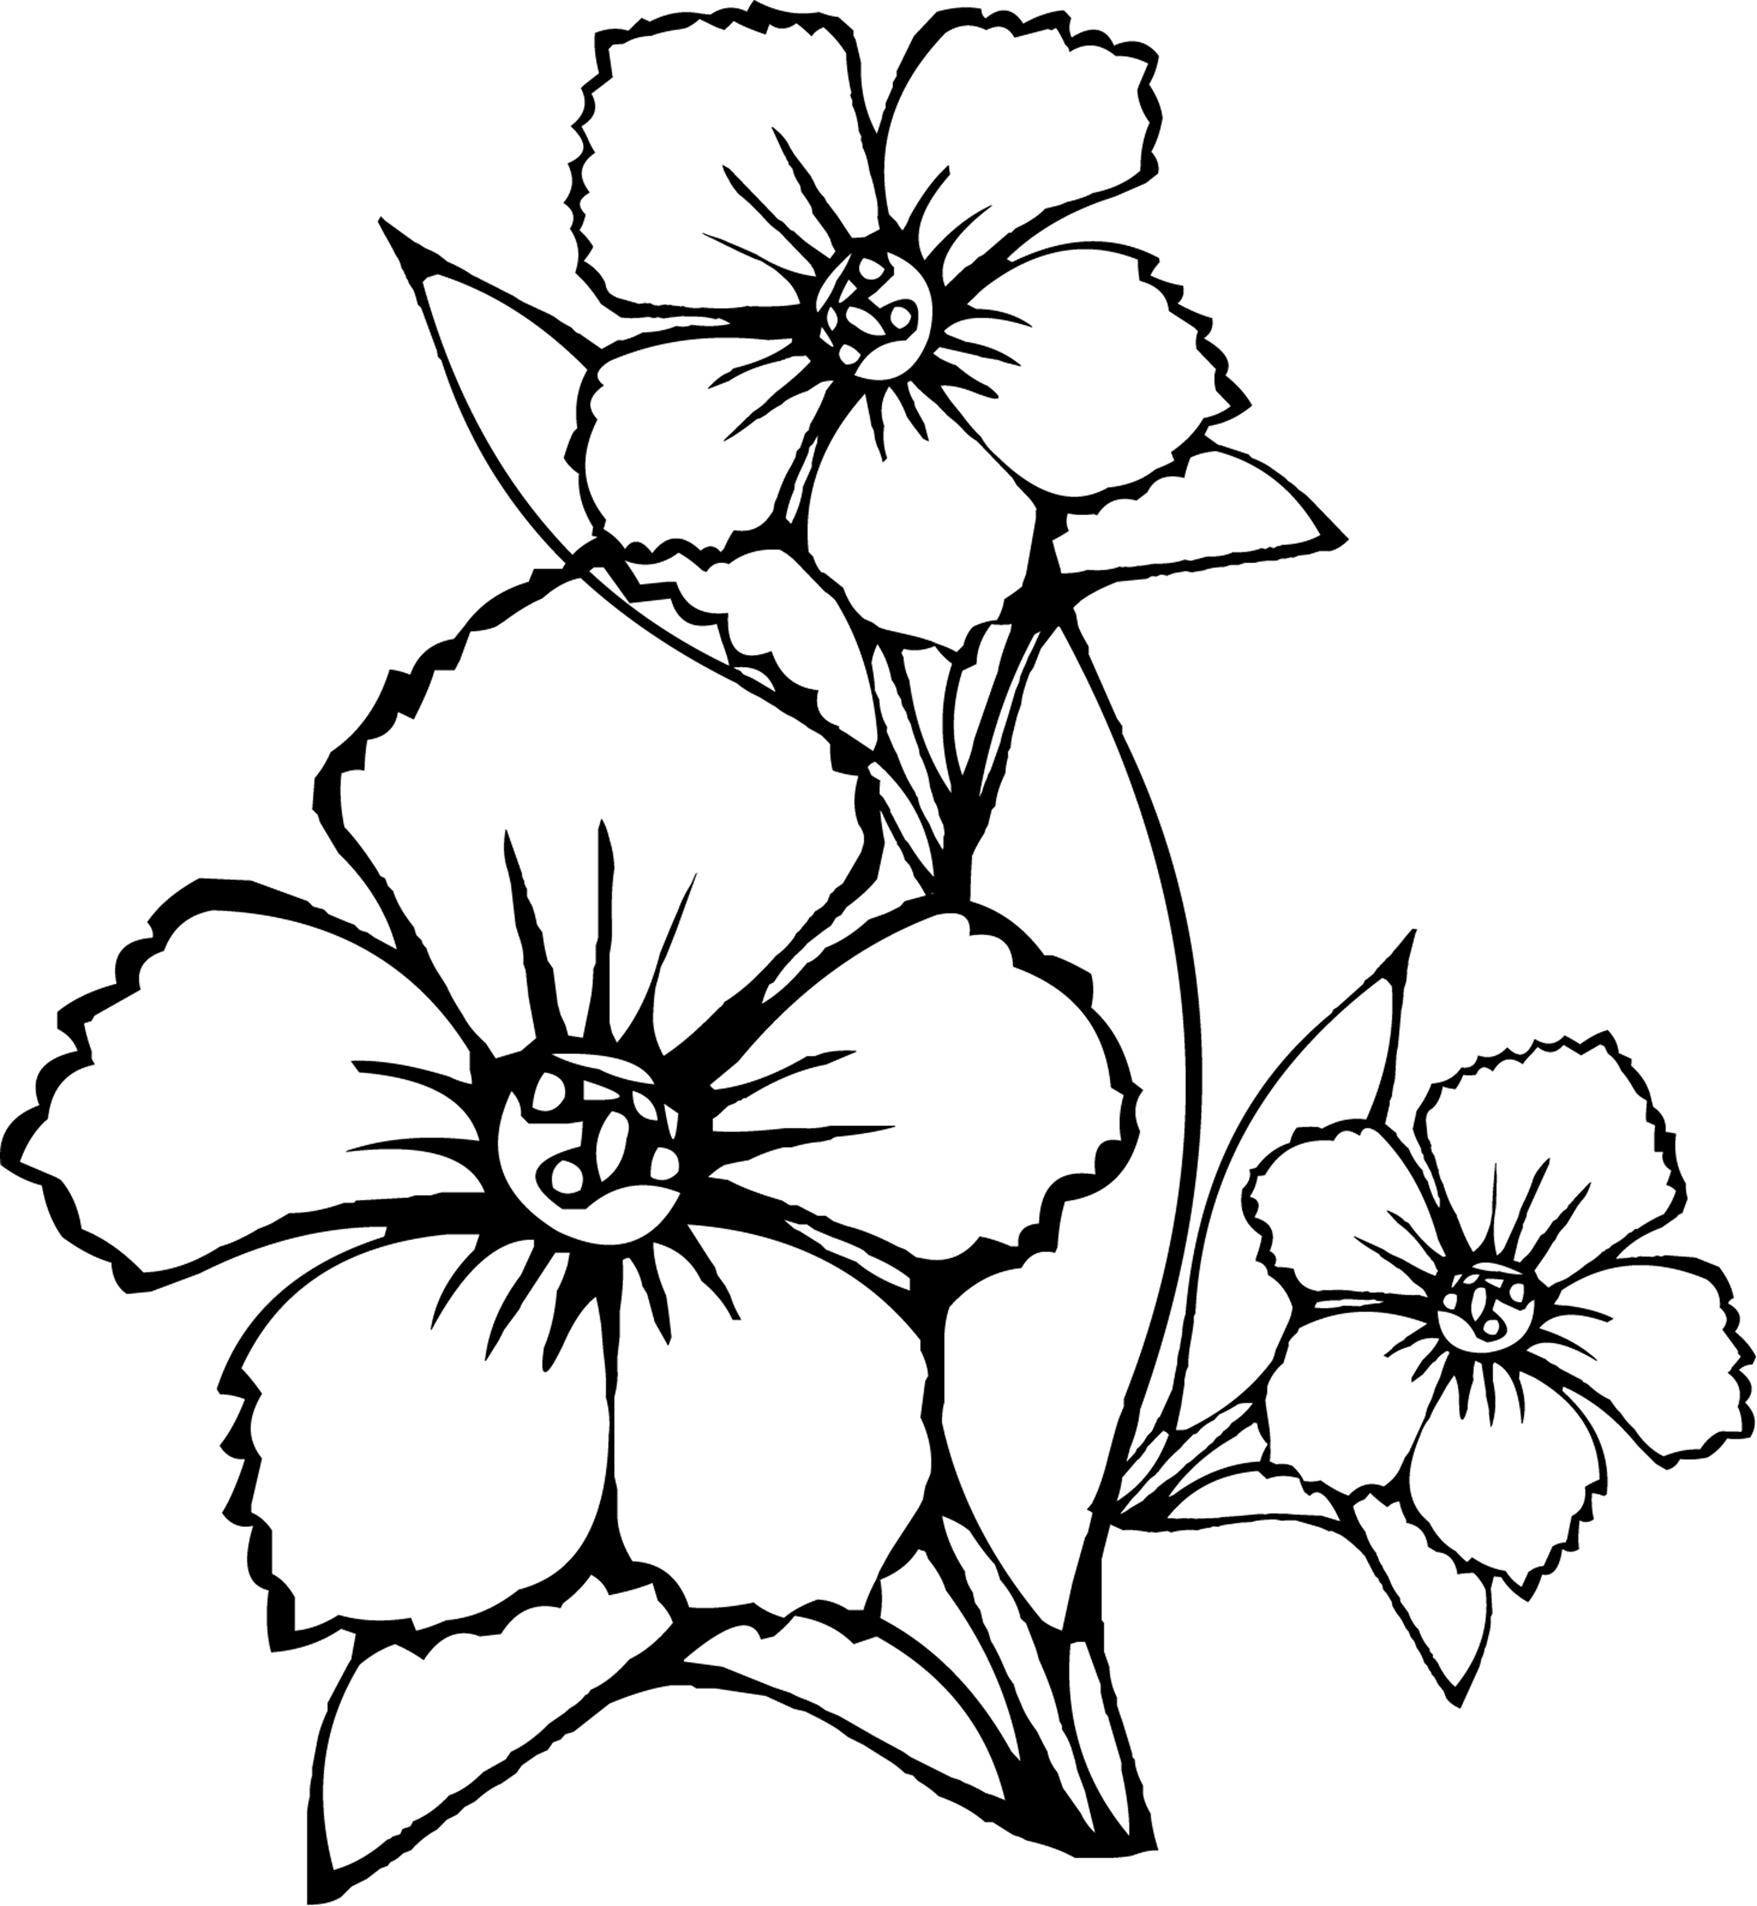 coloring pages flowers free easy to print flower coloring pages tulamama flowers coloring pages